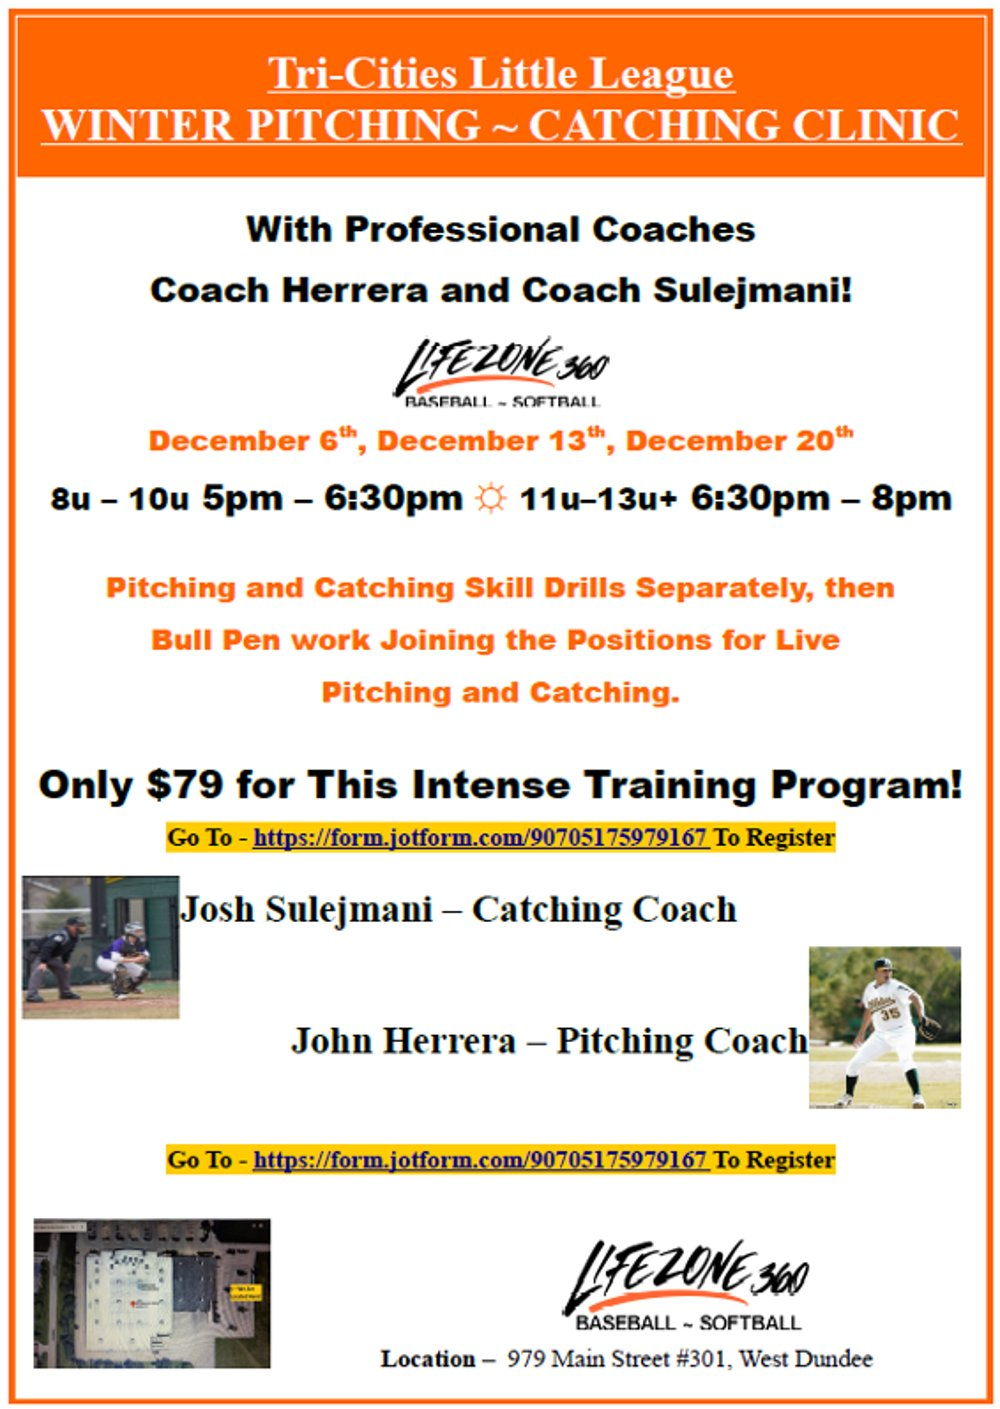 TCLL Pitching and Catching Clinic